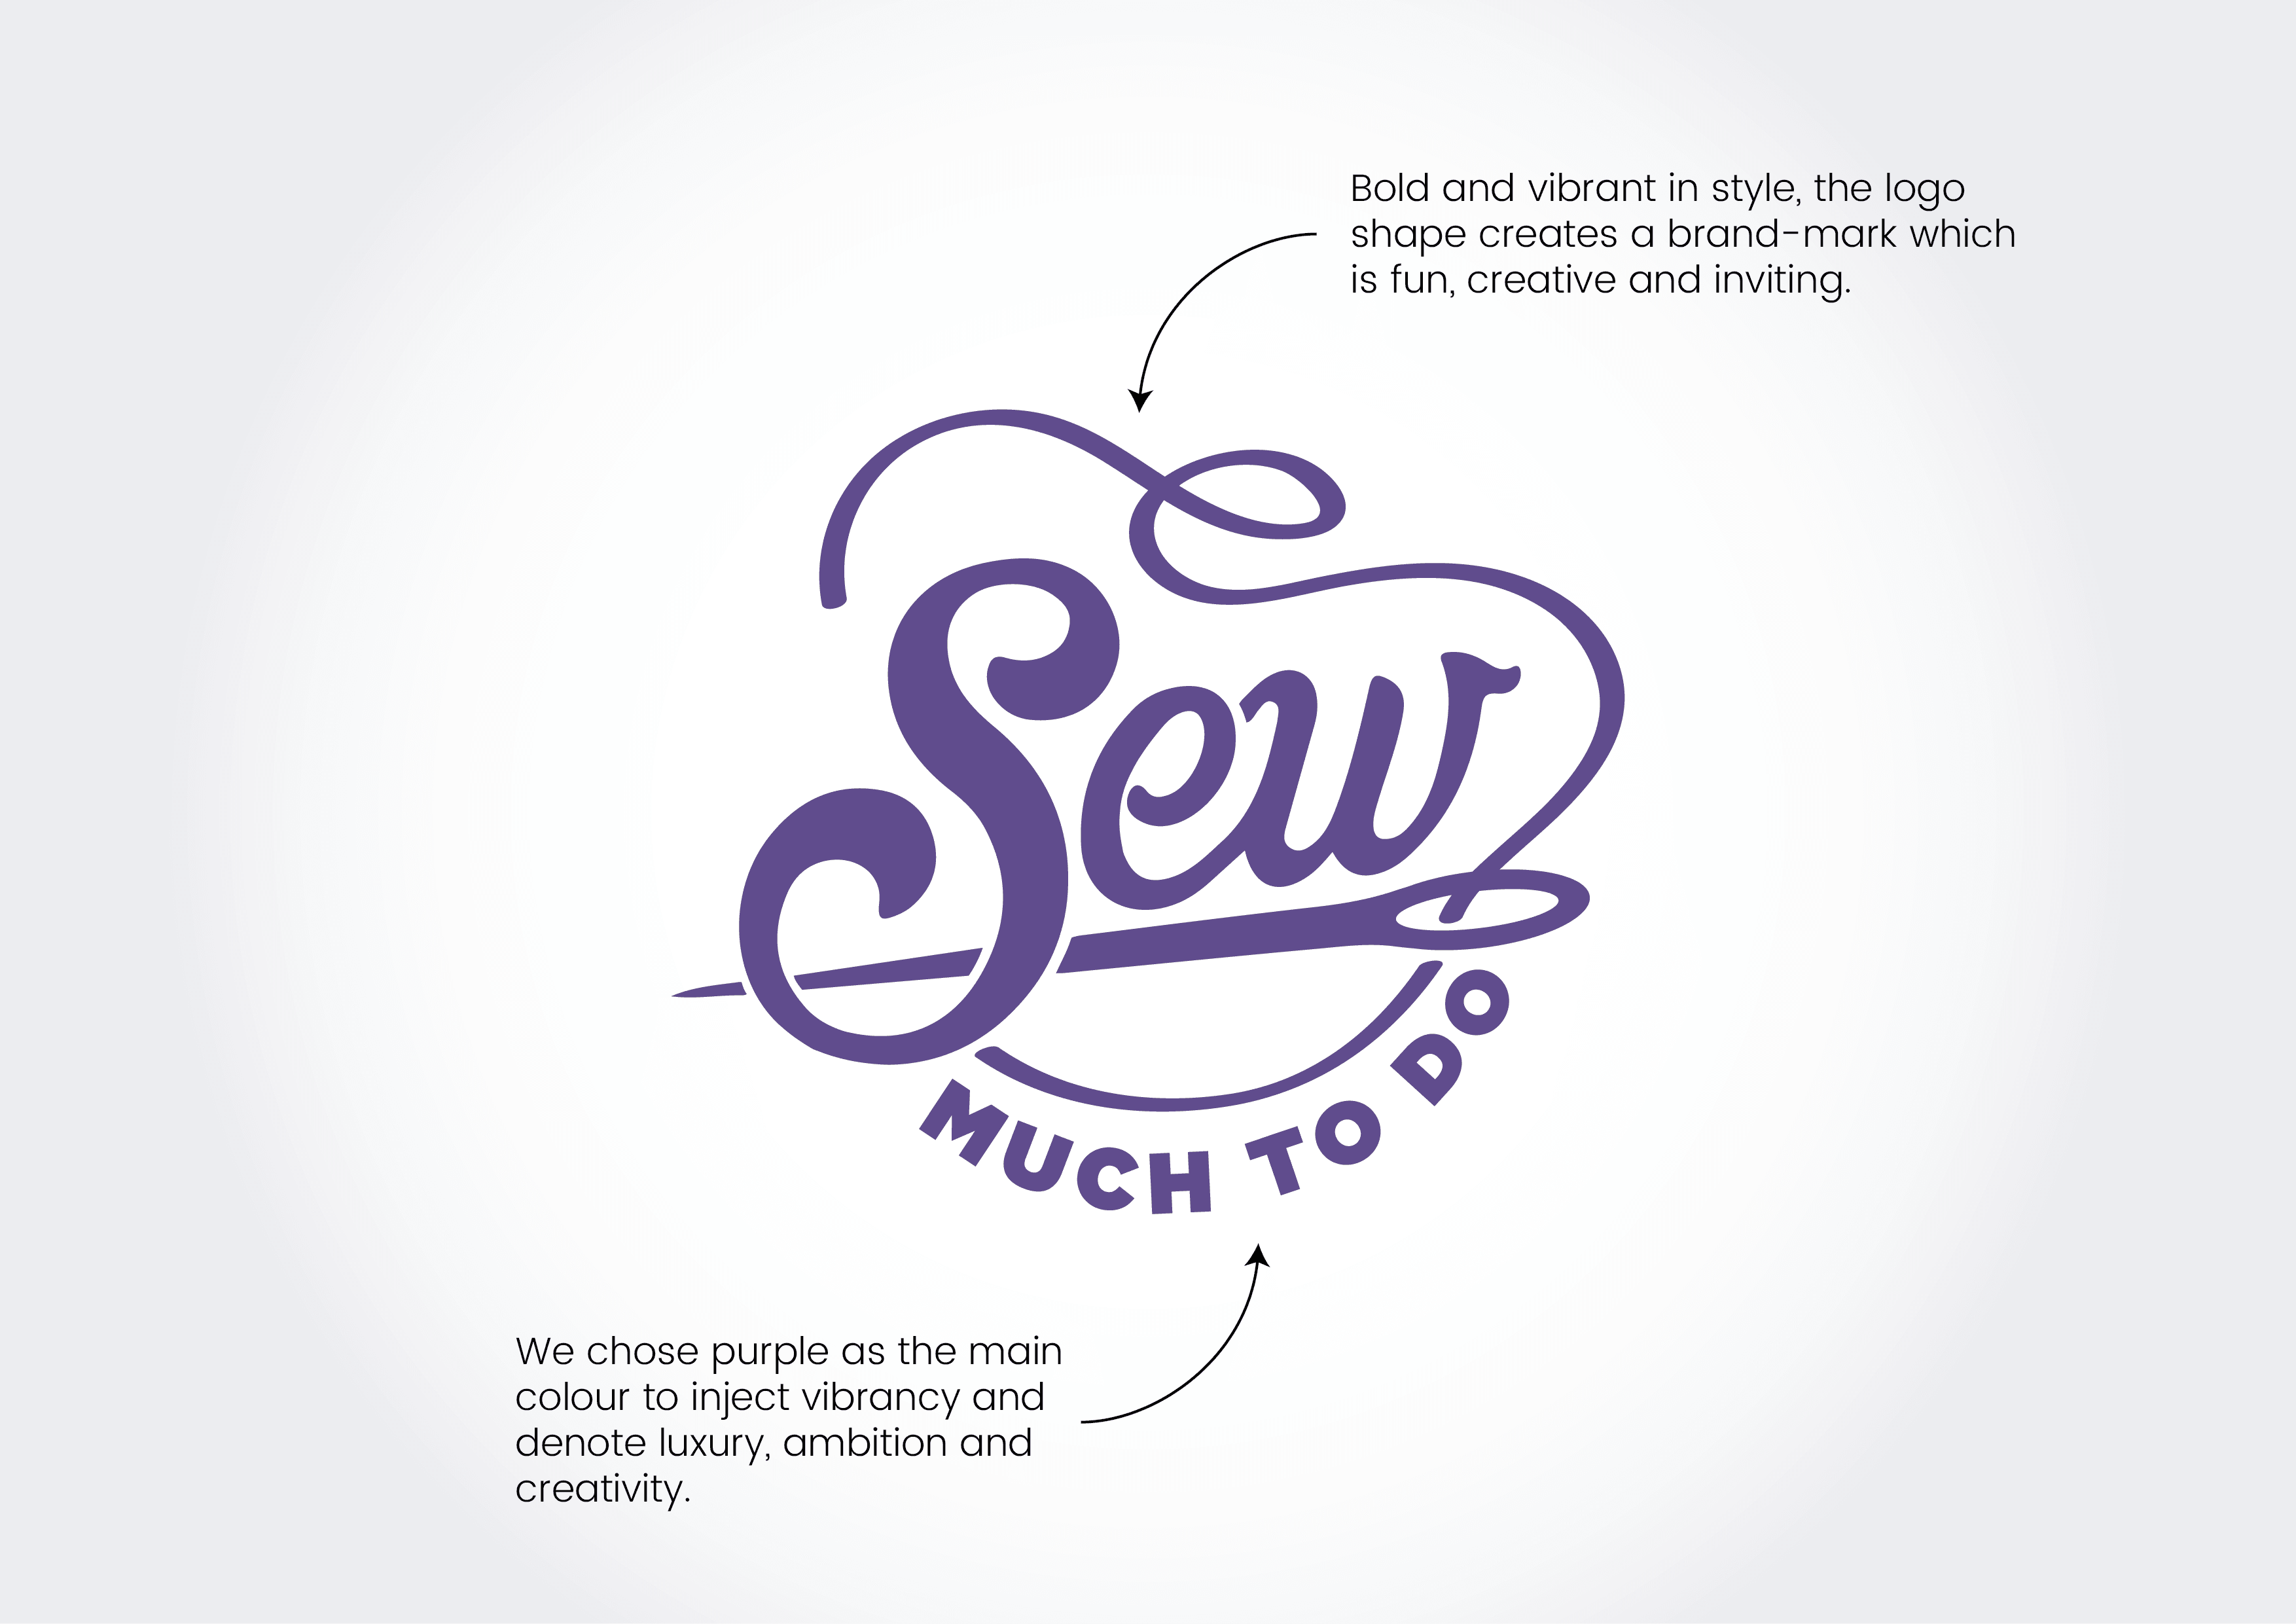 Sew much to do logo explanation